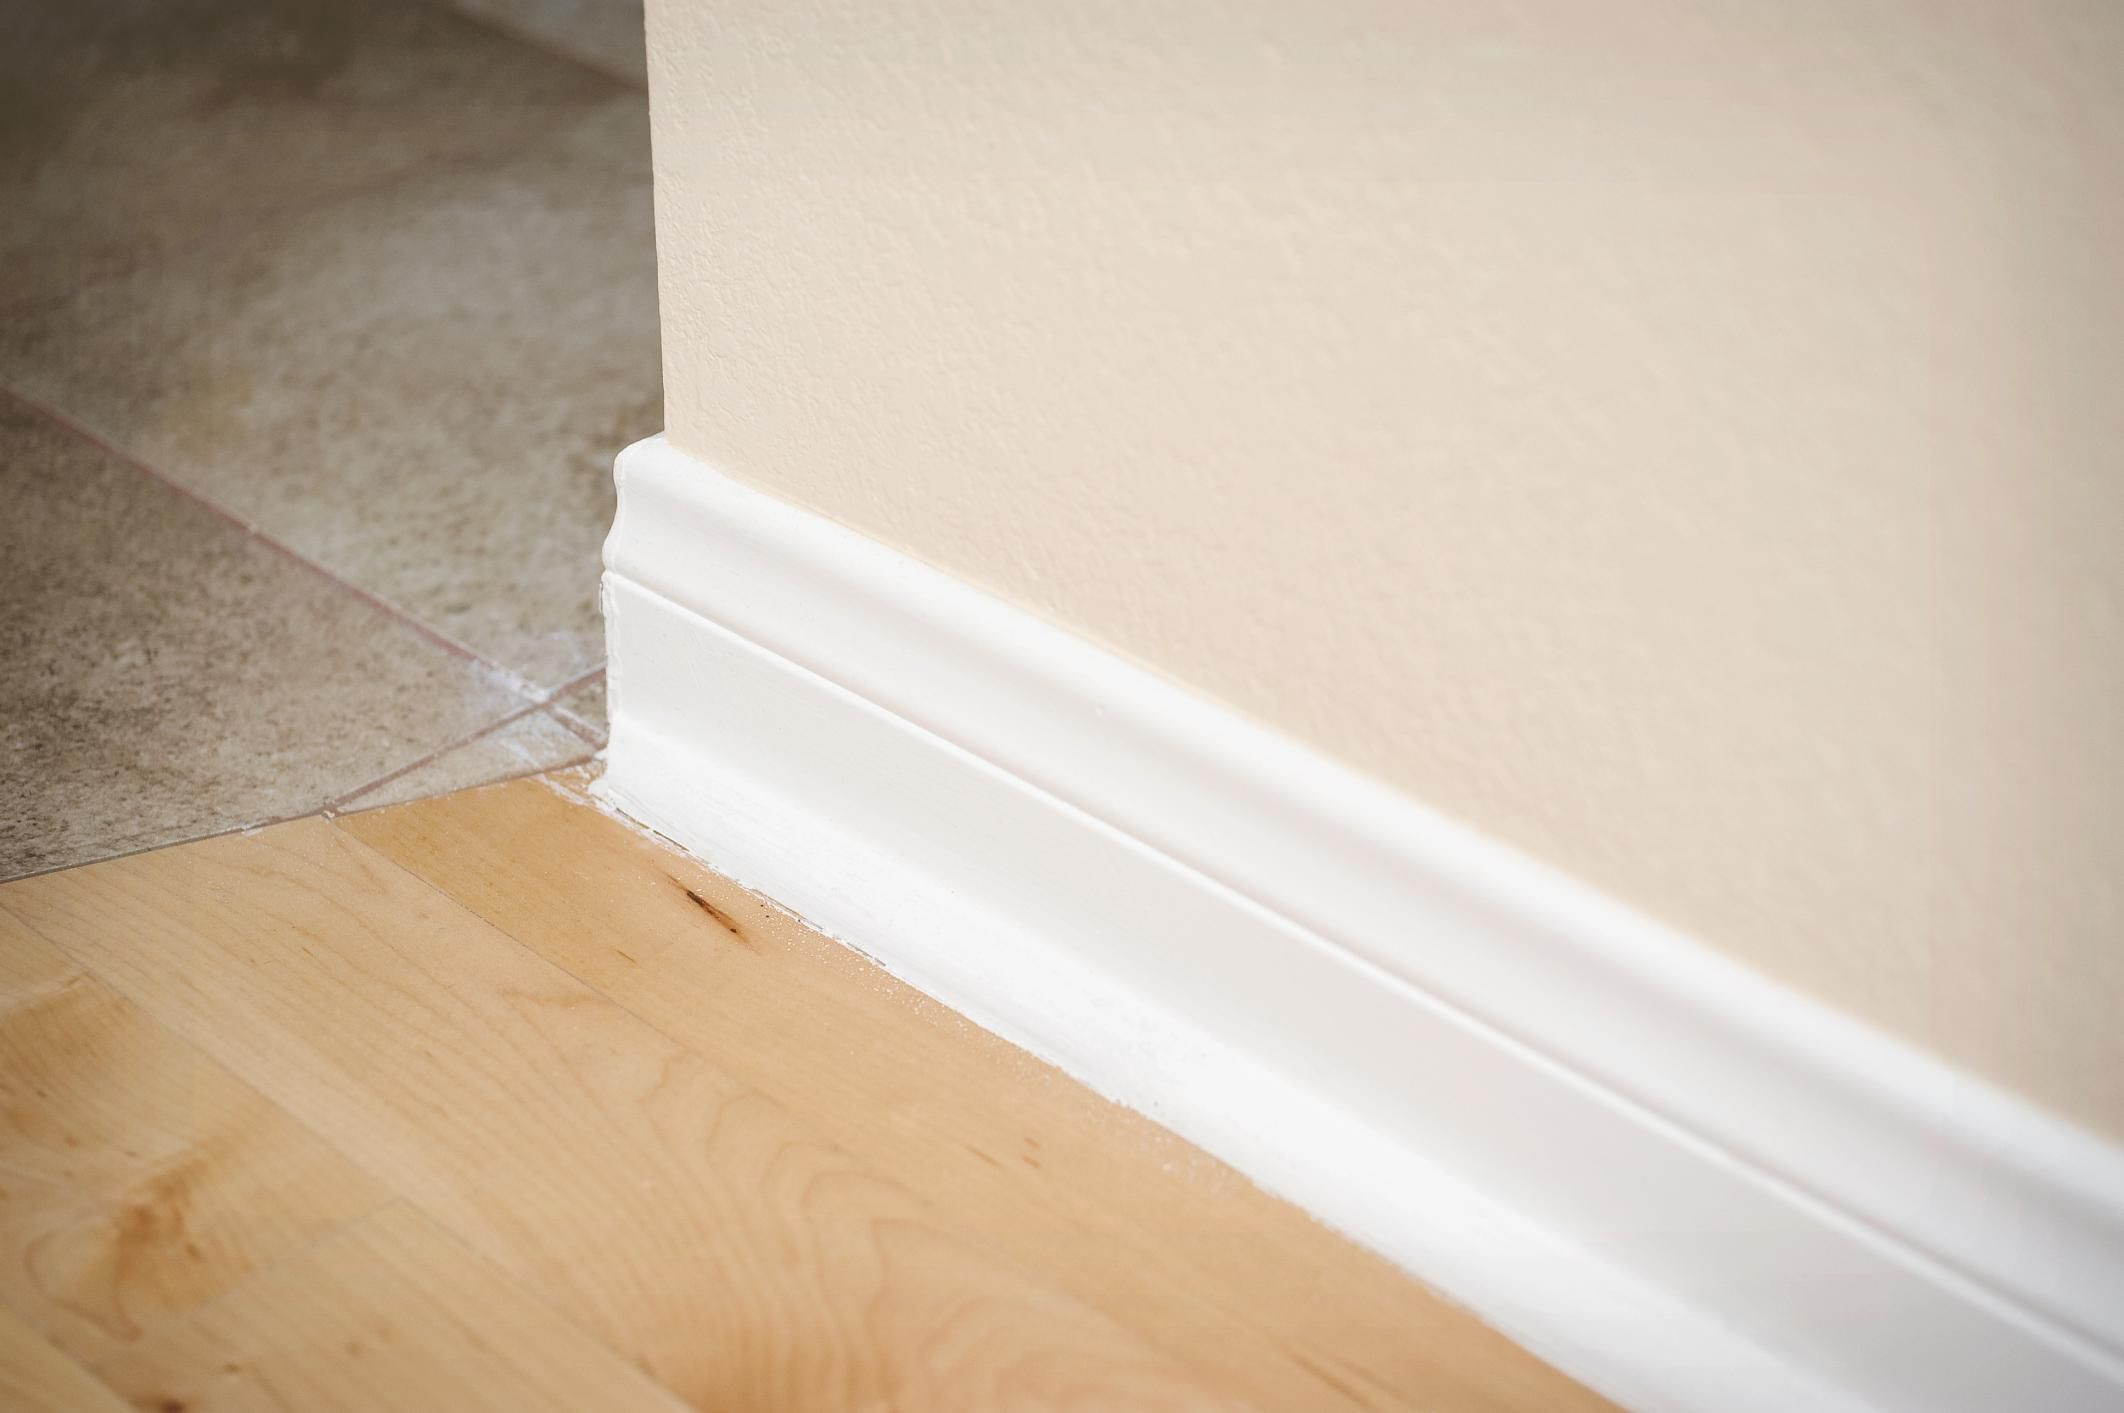 painting hardwood floors this old house of how to paint baseboards advice and hacks with 150207475 56a49f1b5f9b58b7d0d7e0d6